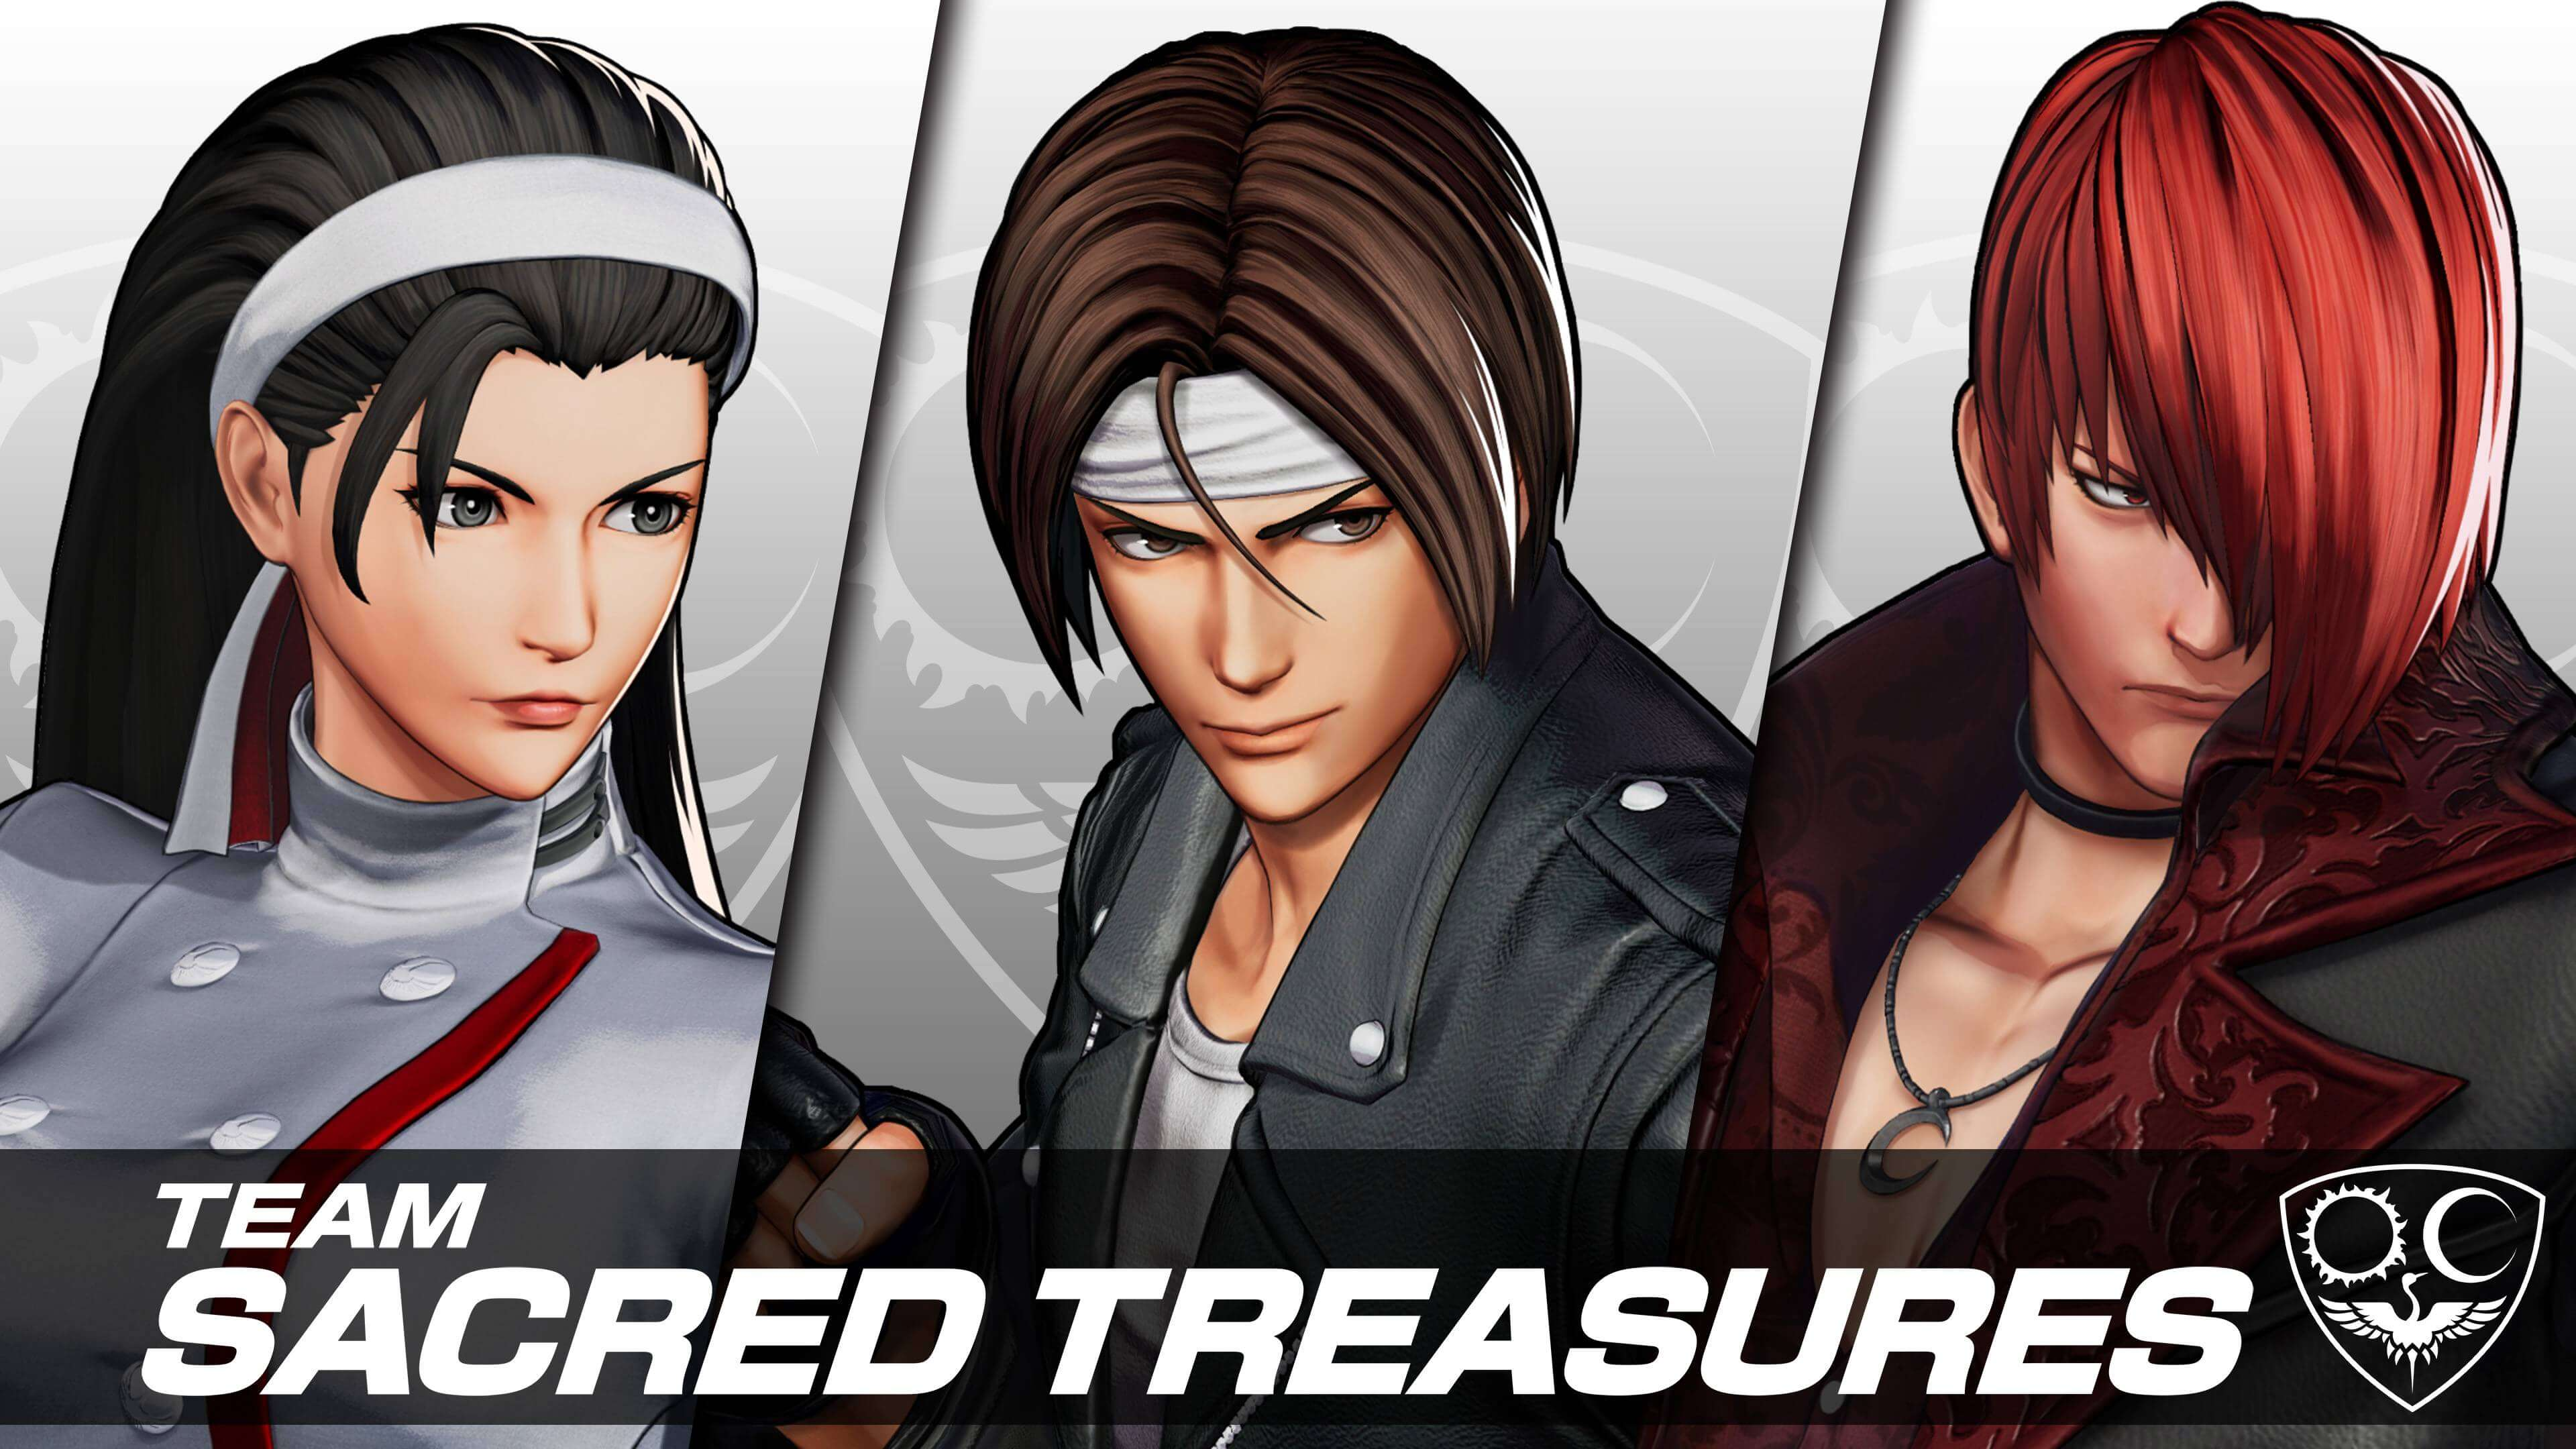 New characters in King of Fighters XV - Chizuru Kagura, Kyo Kusanagi, and Iori Yagami from Team Sacred Treasures